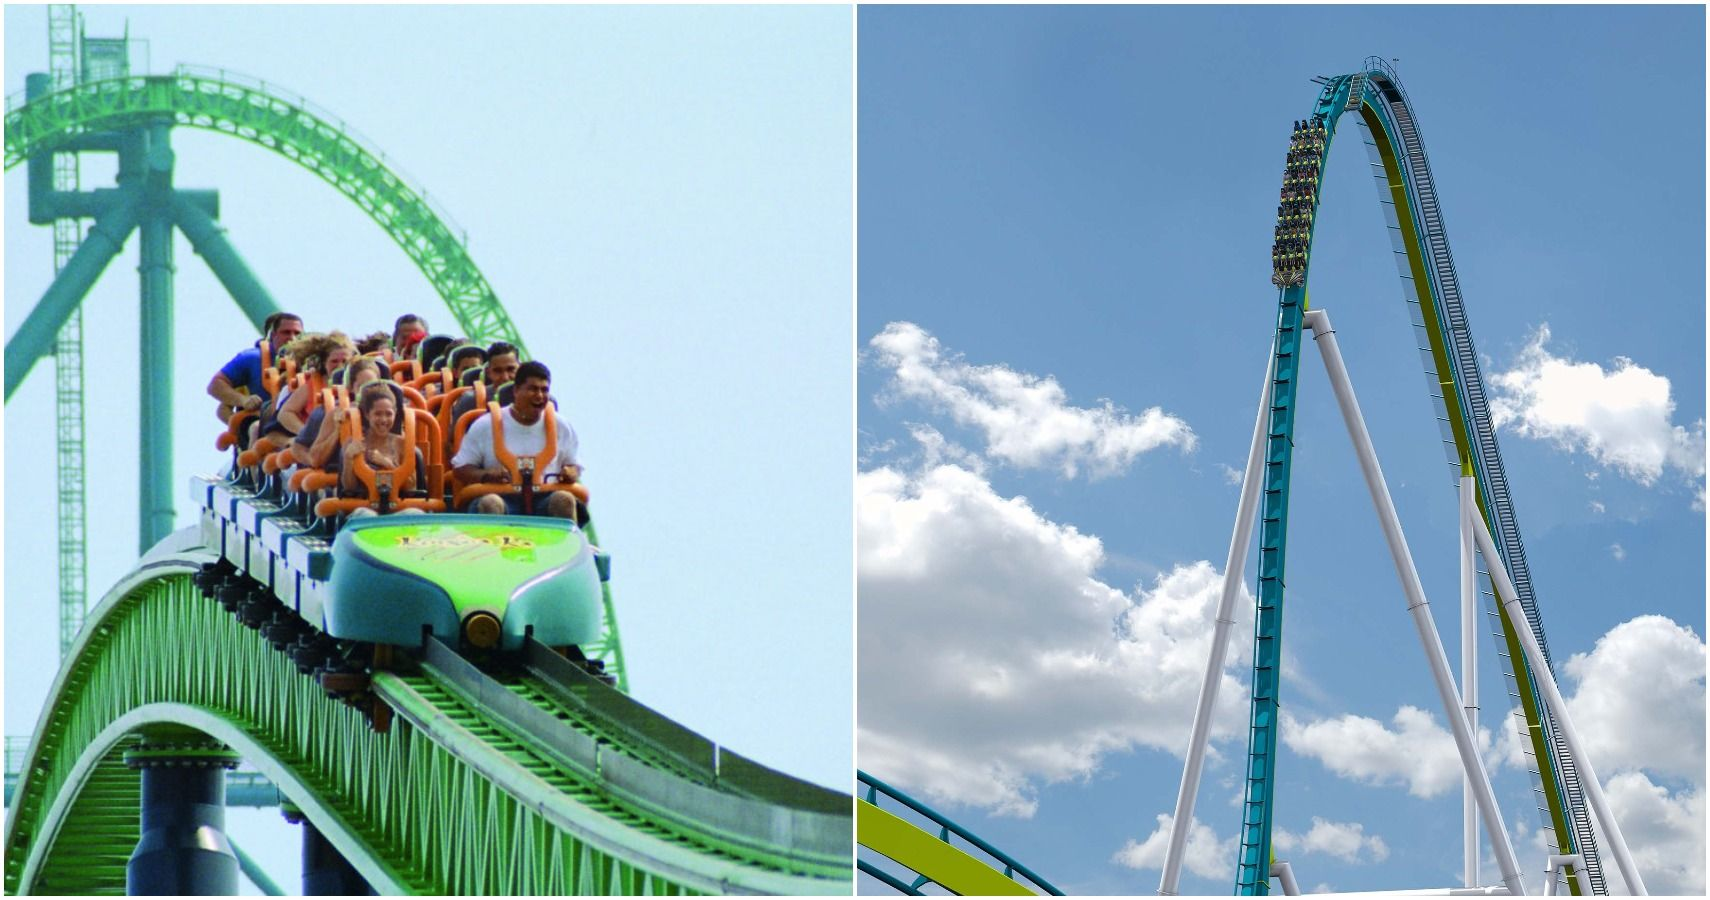 The 10 Tallest Amusement Park Rides In The World (And Where To See Them)